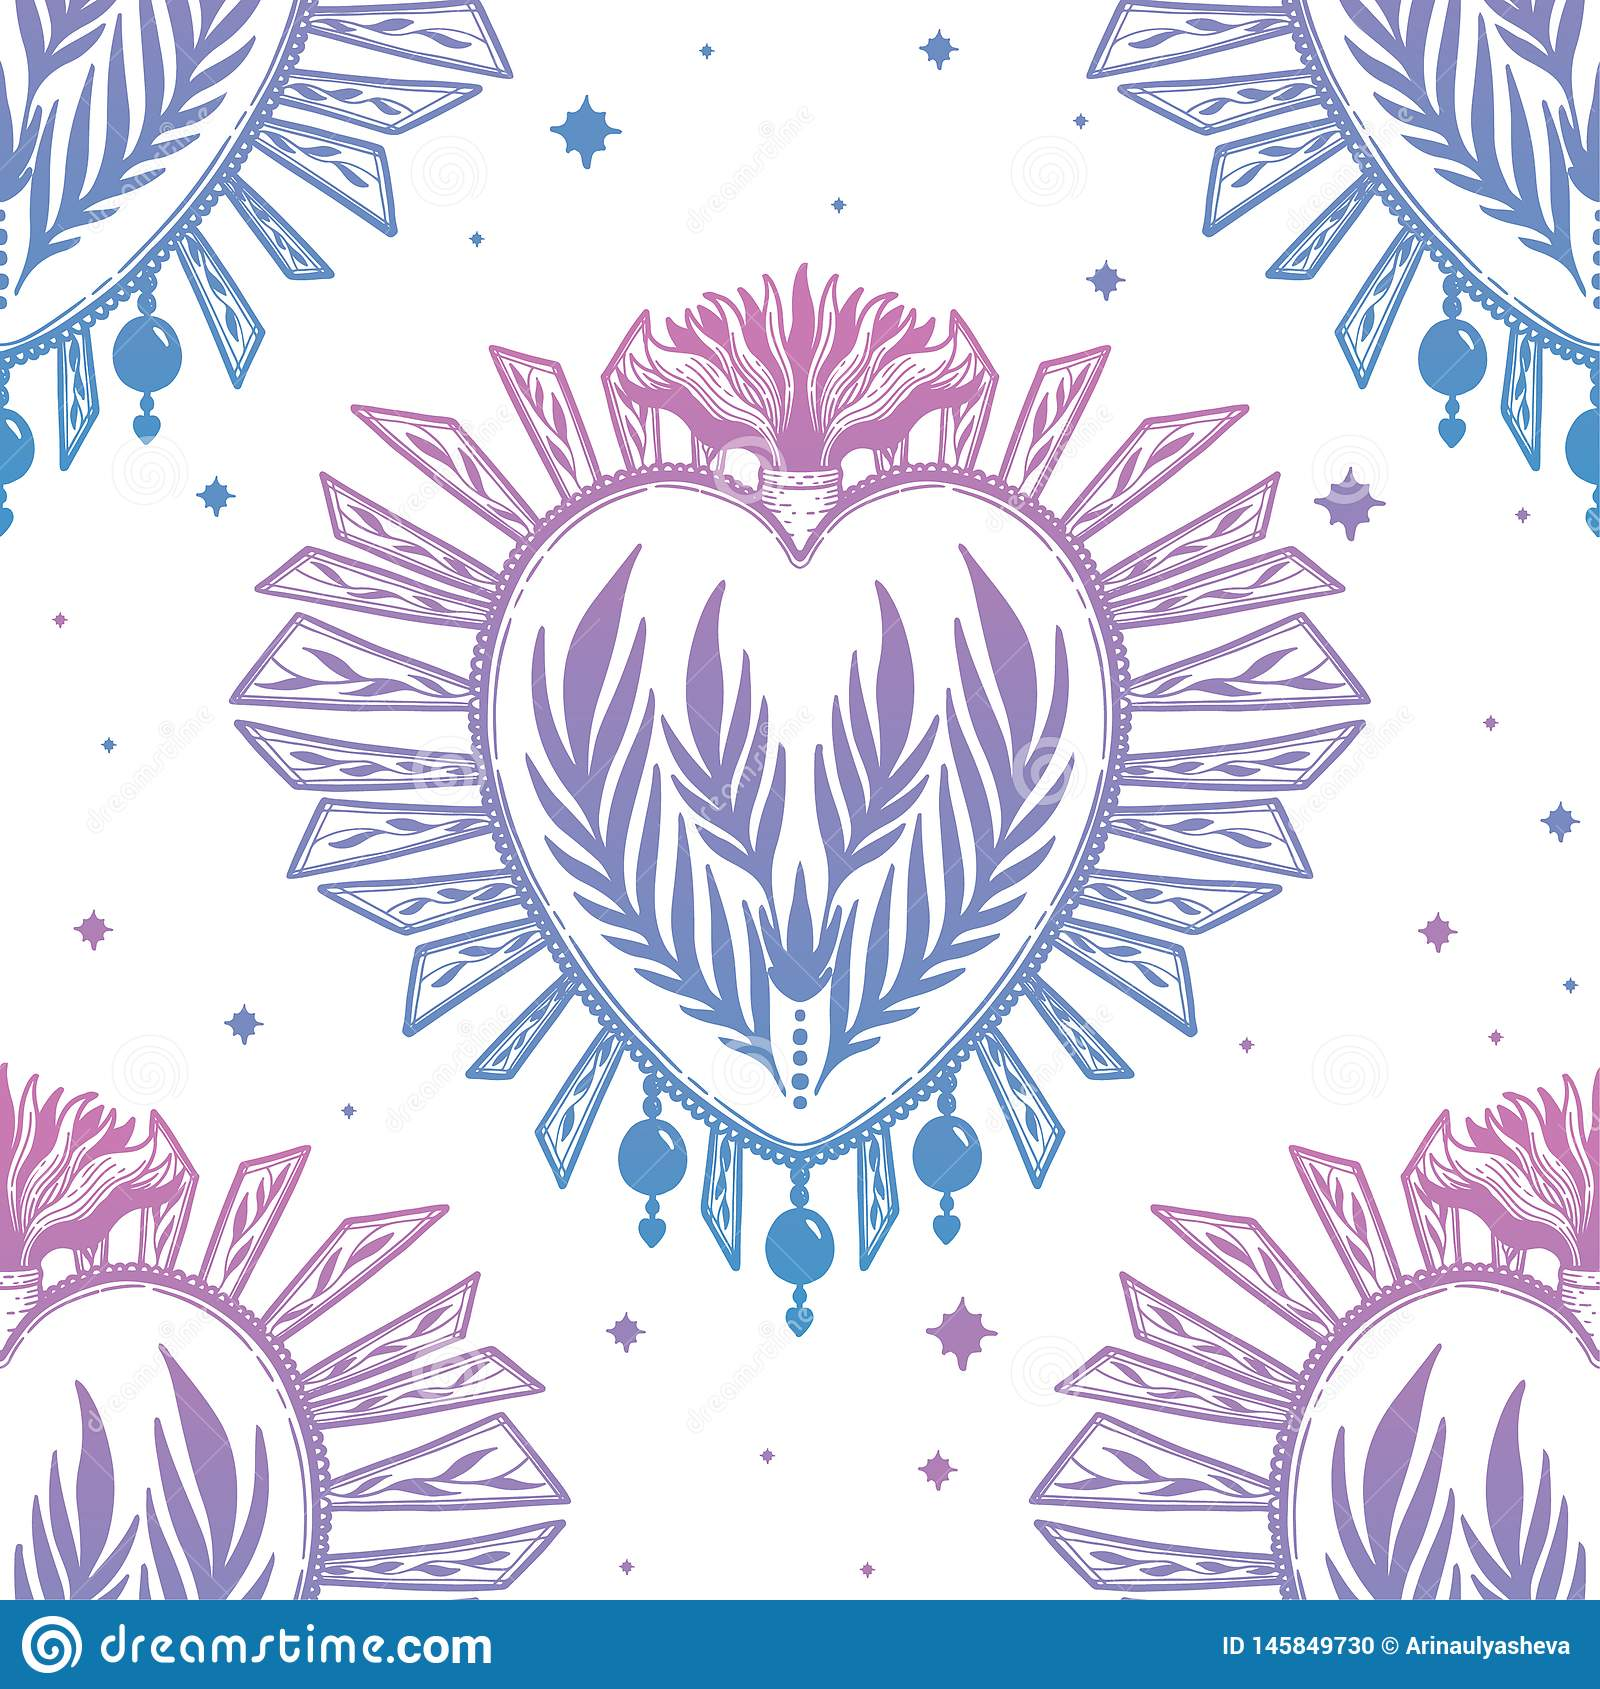 Pattern graphic illustration Beautiful holy heart with mystic and occult symbols. Esoteric boho style